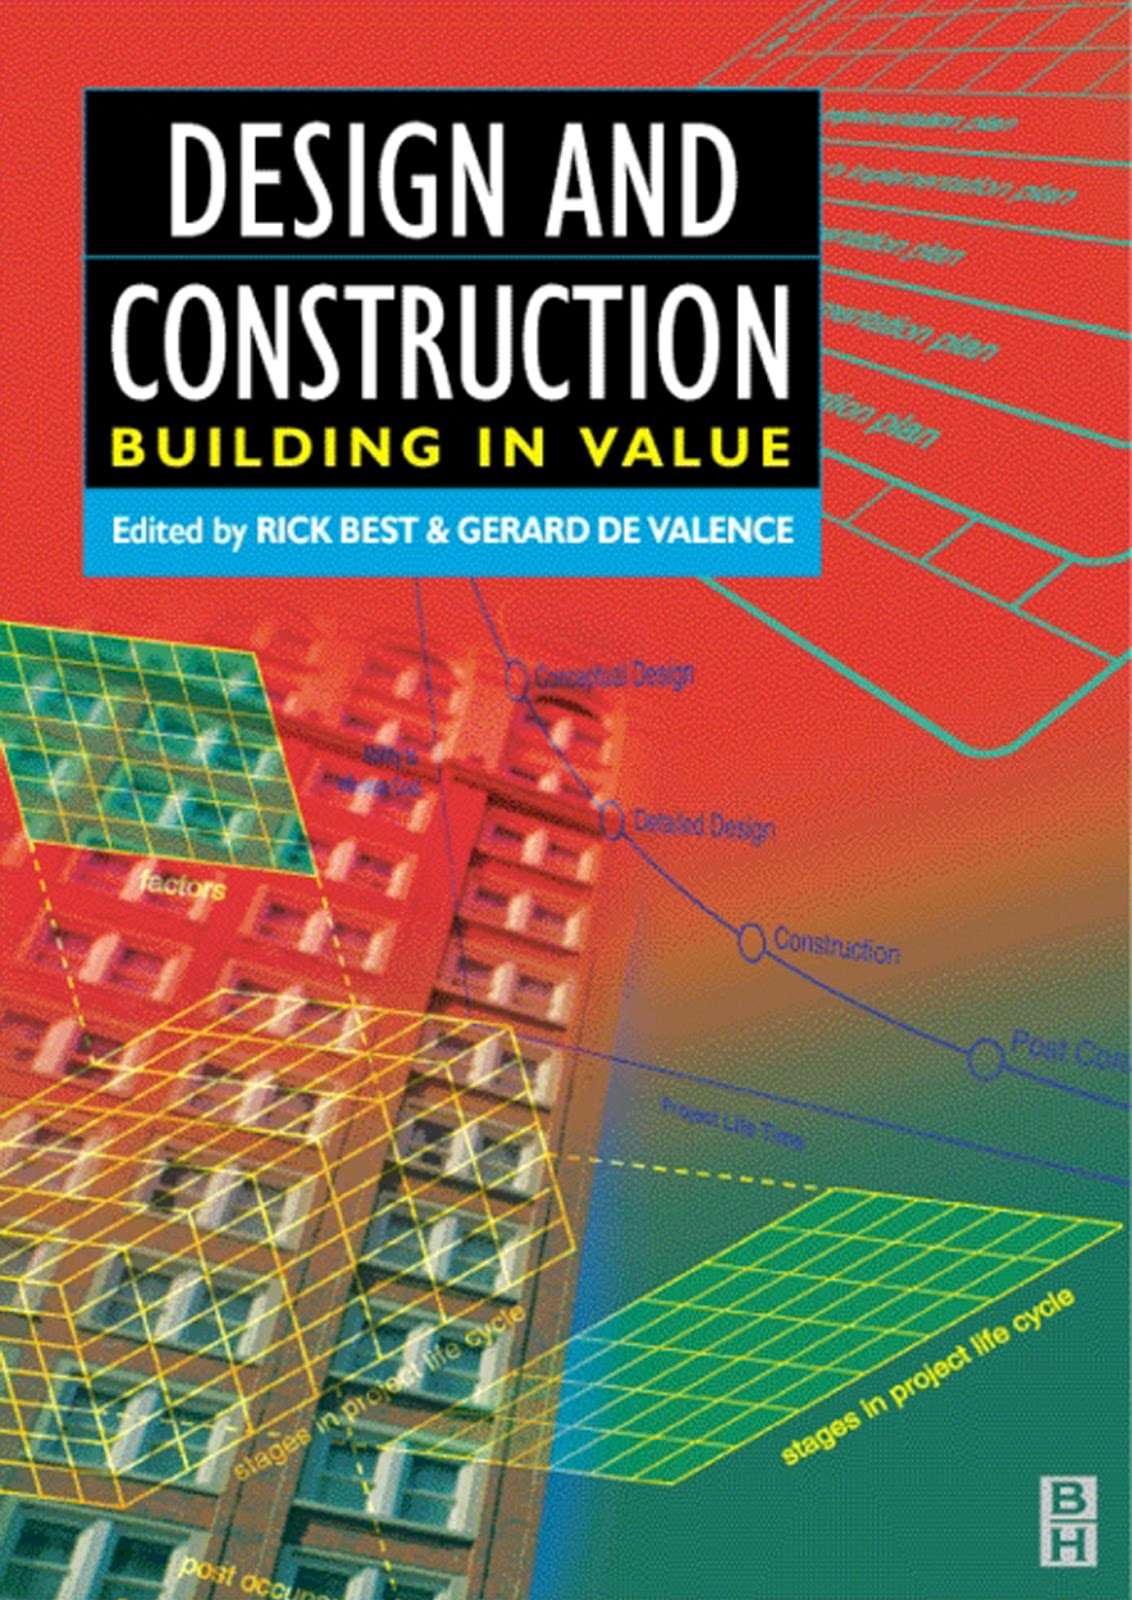 Book: Design and Construction: Building in Value by Rick Best